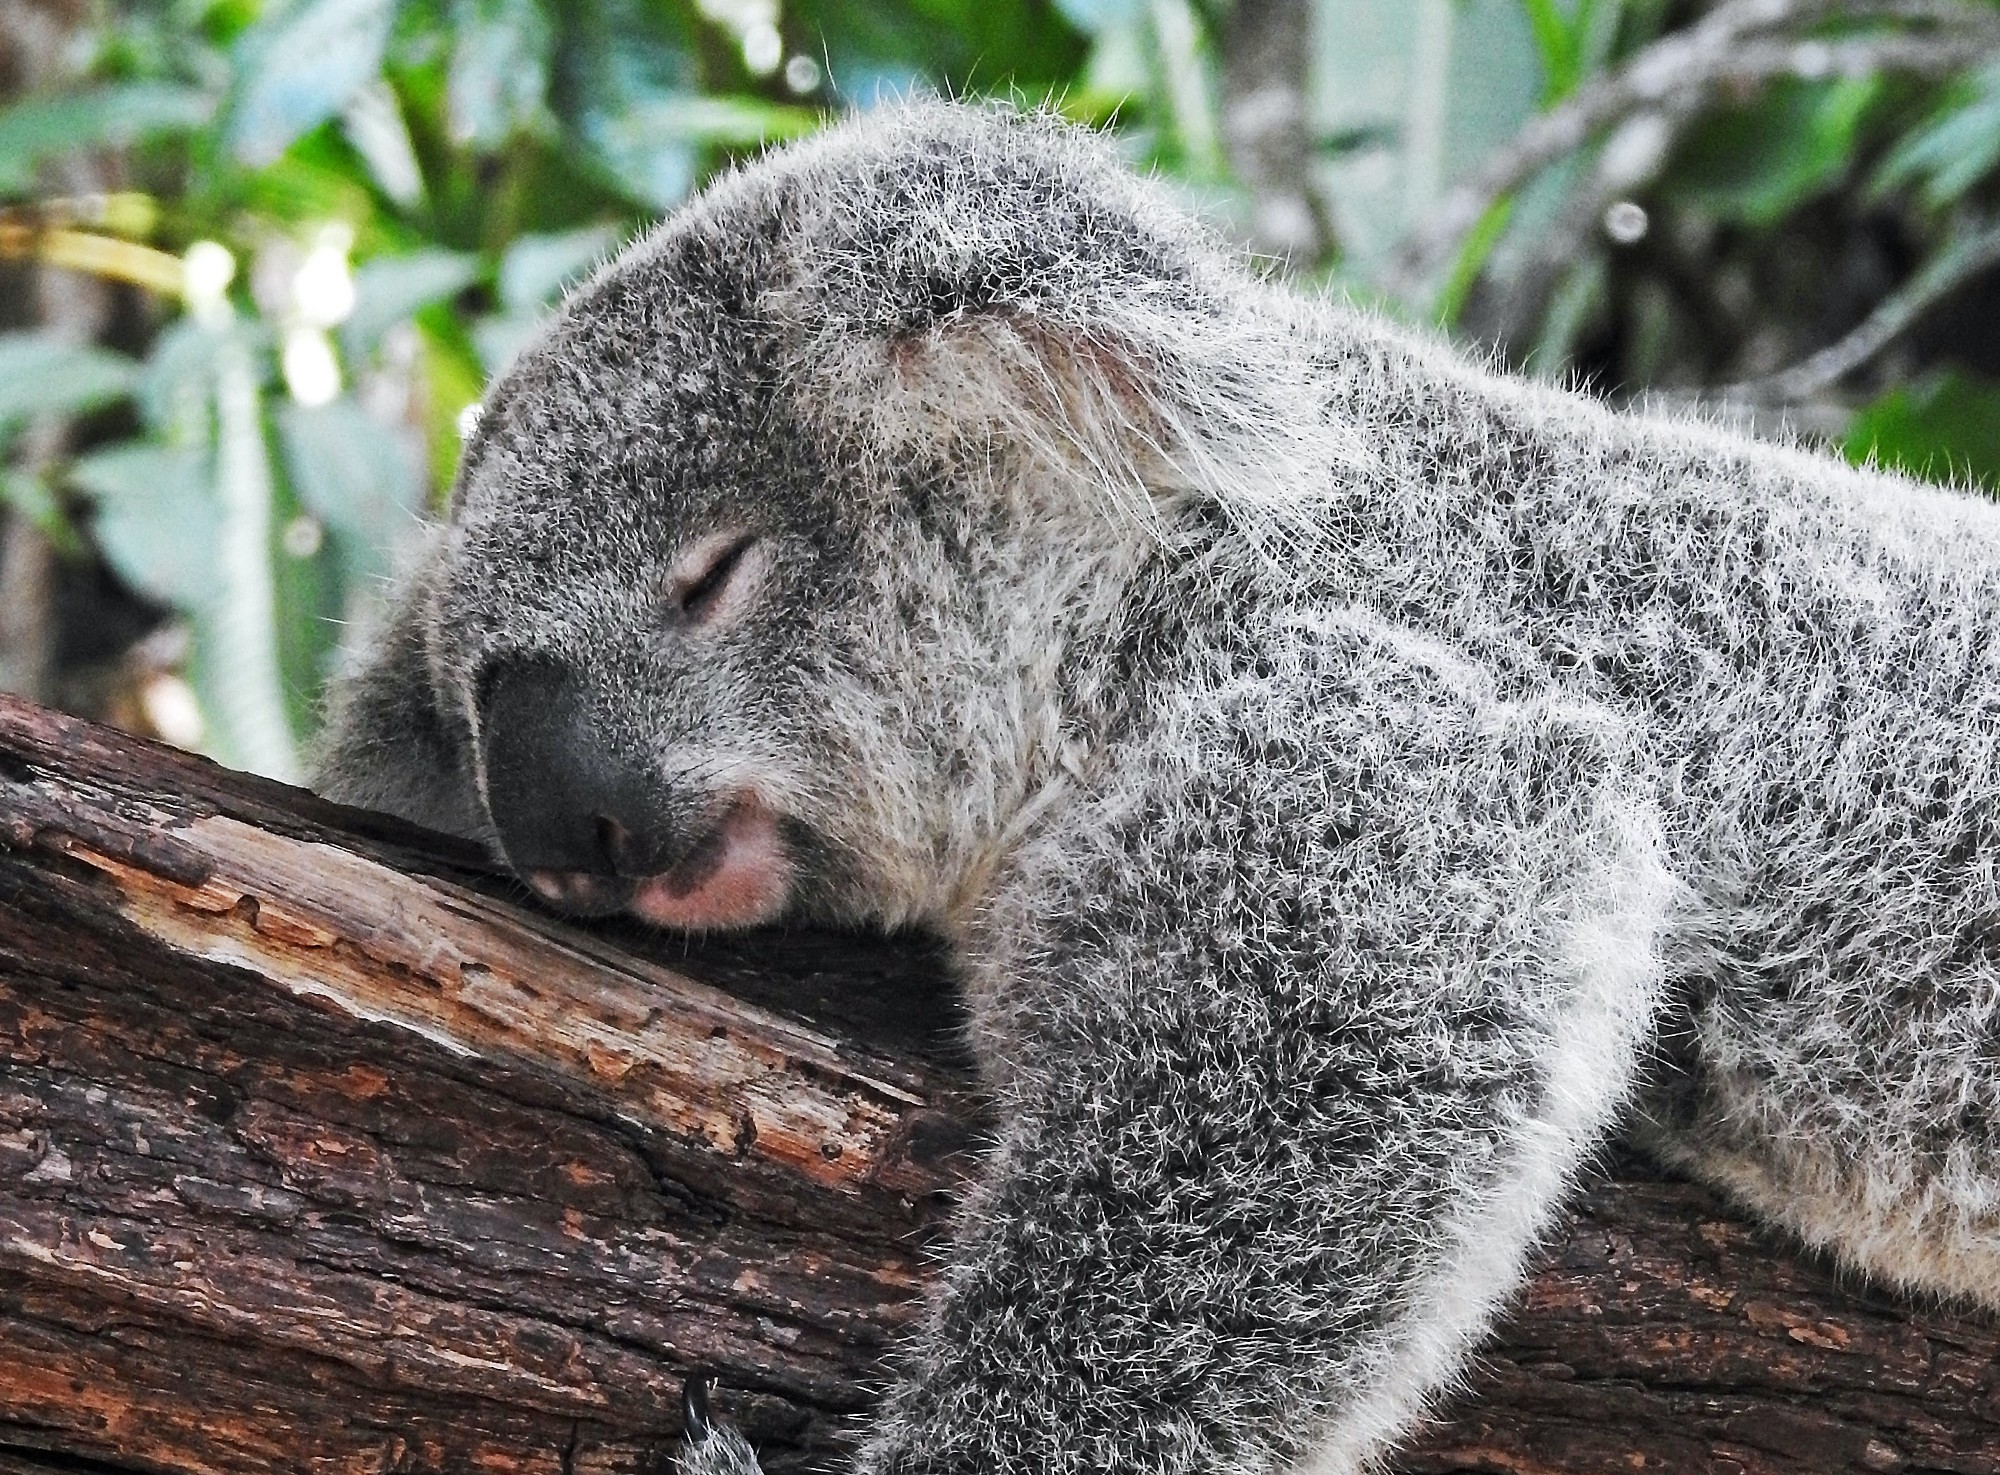 Sleeping koala. He's awake 3 years of his life. 4 hours less sleep a day means 6 years of consciousness